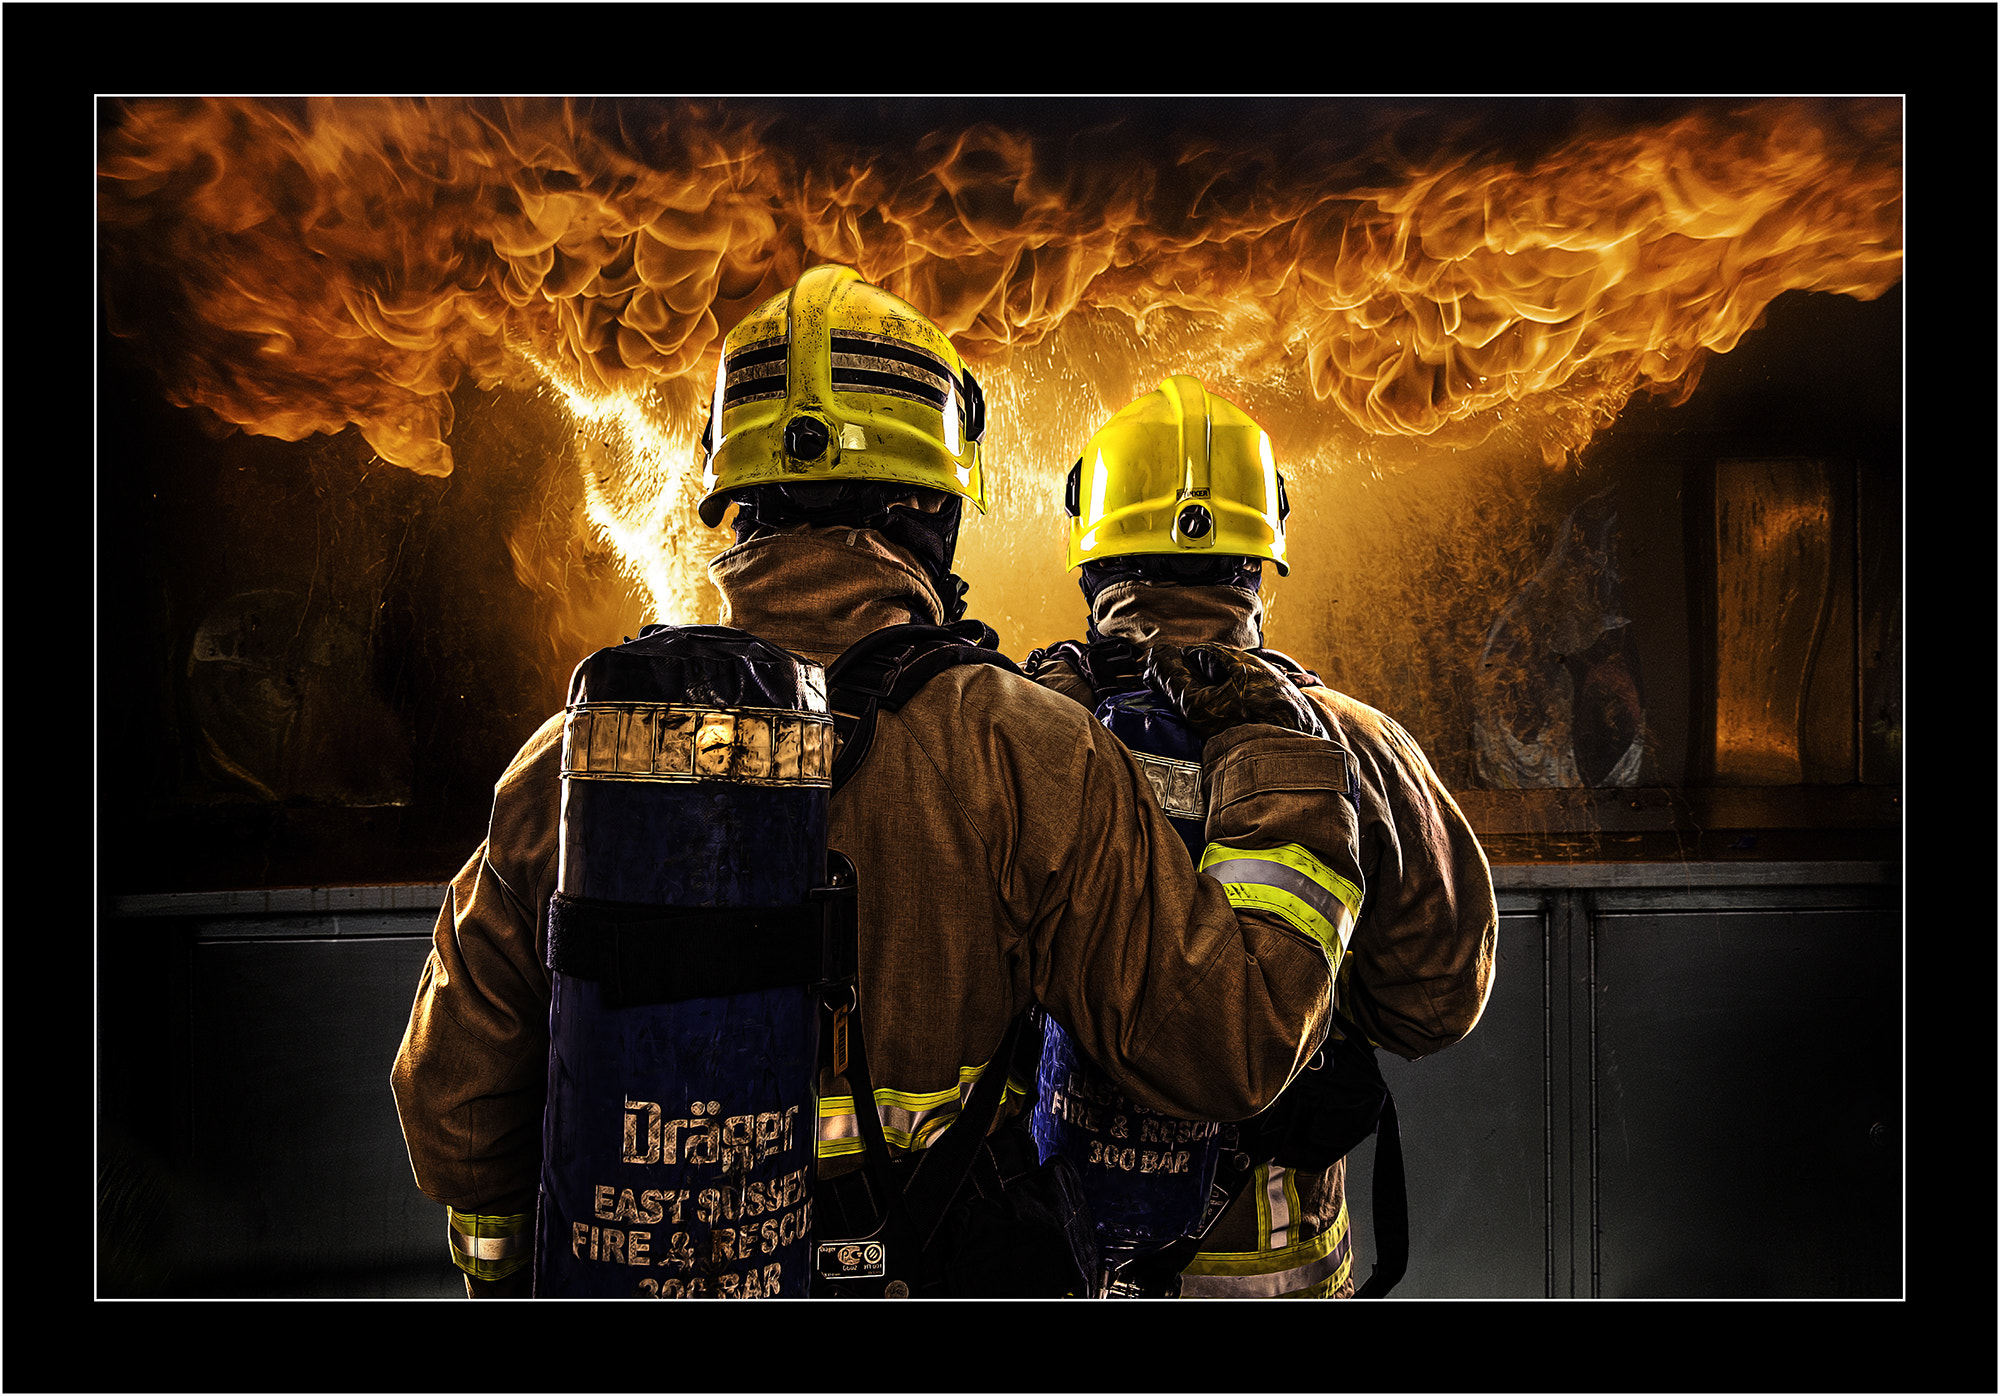 Photograph The chip pan fire by Kevin Sharpe on 500px